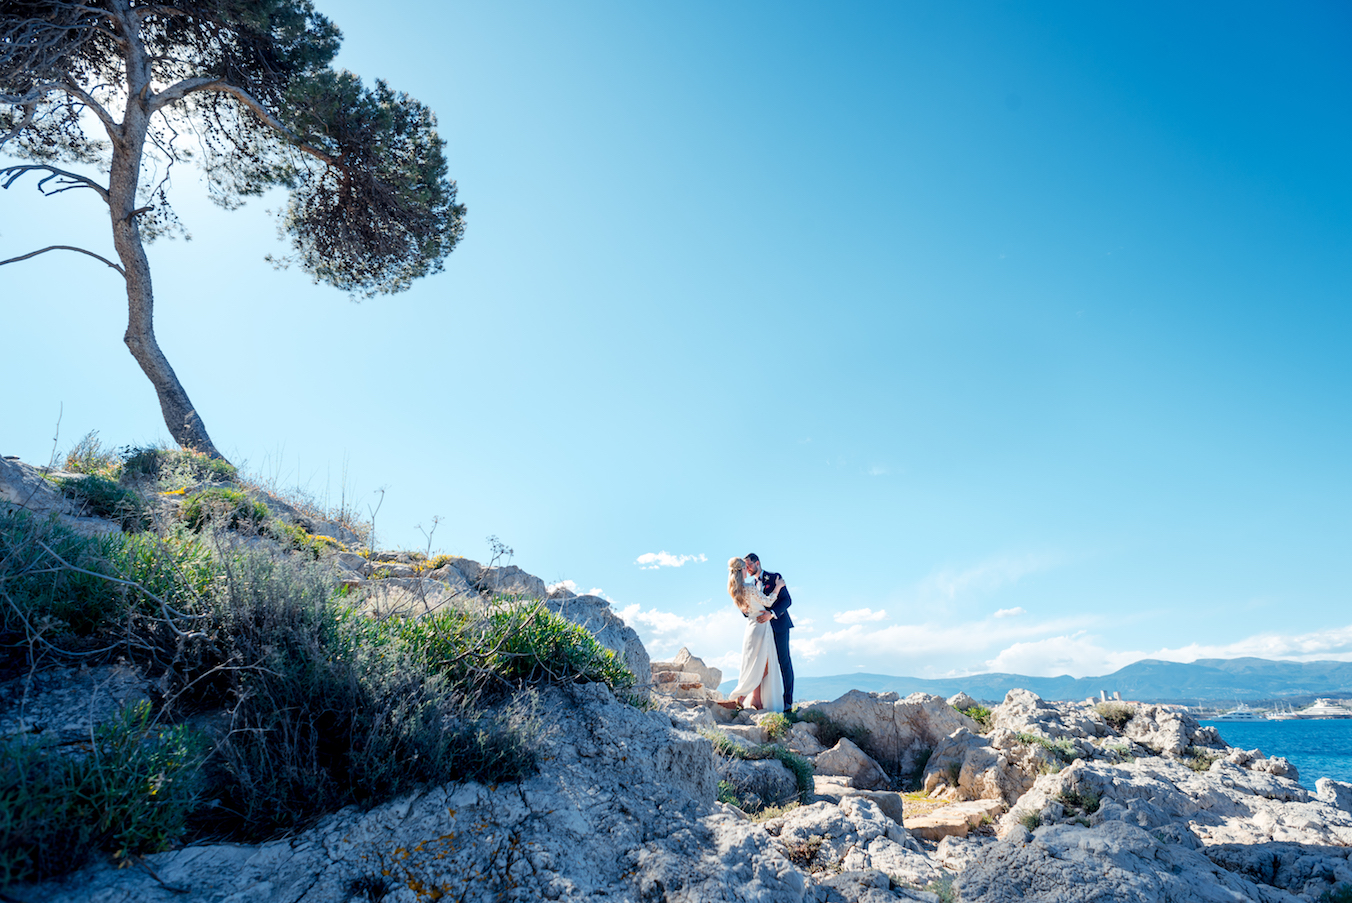 Antibes Wedding Belles Rives FrenAntibes Wedding Belles Rives French Riviera - Photographe Mariage Belles Rives ch Riviera